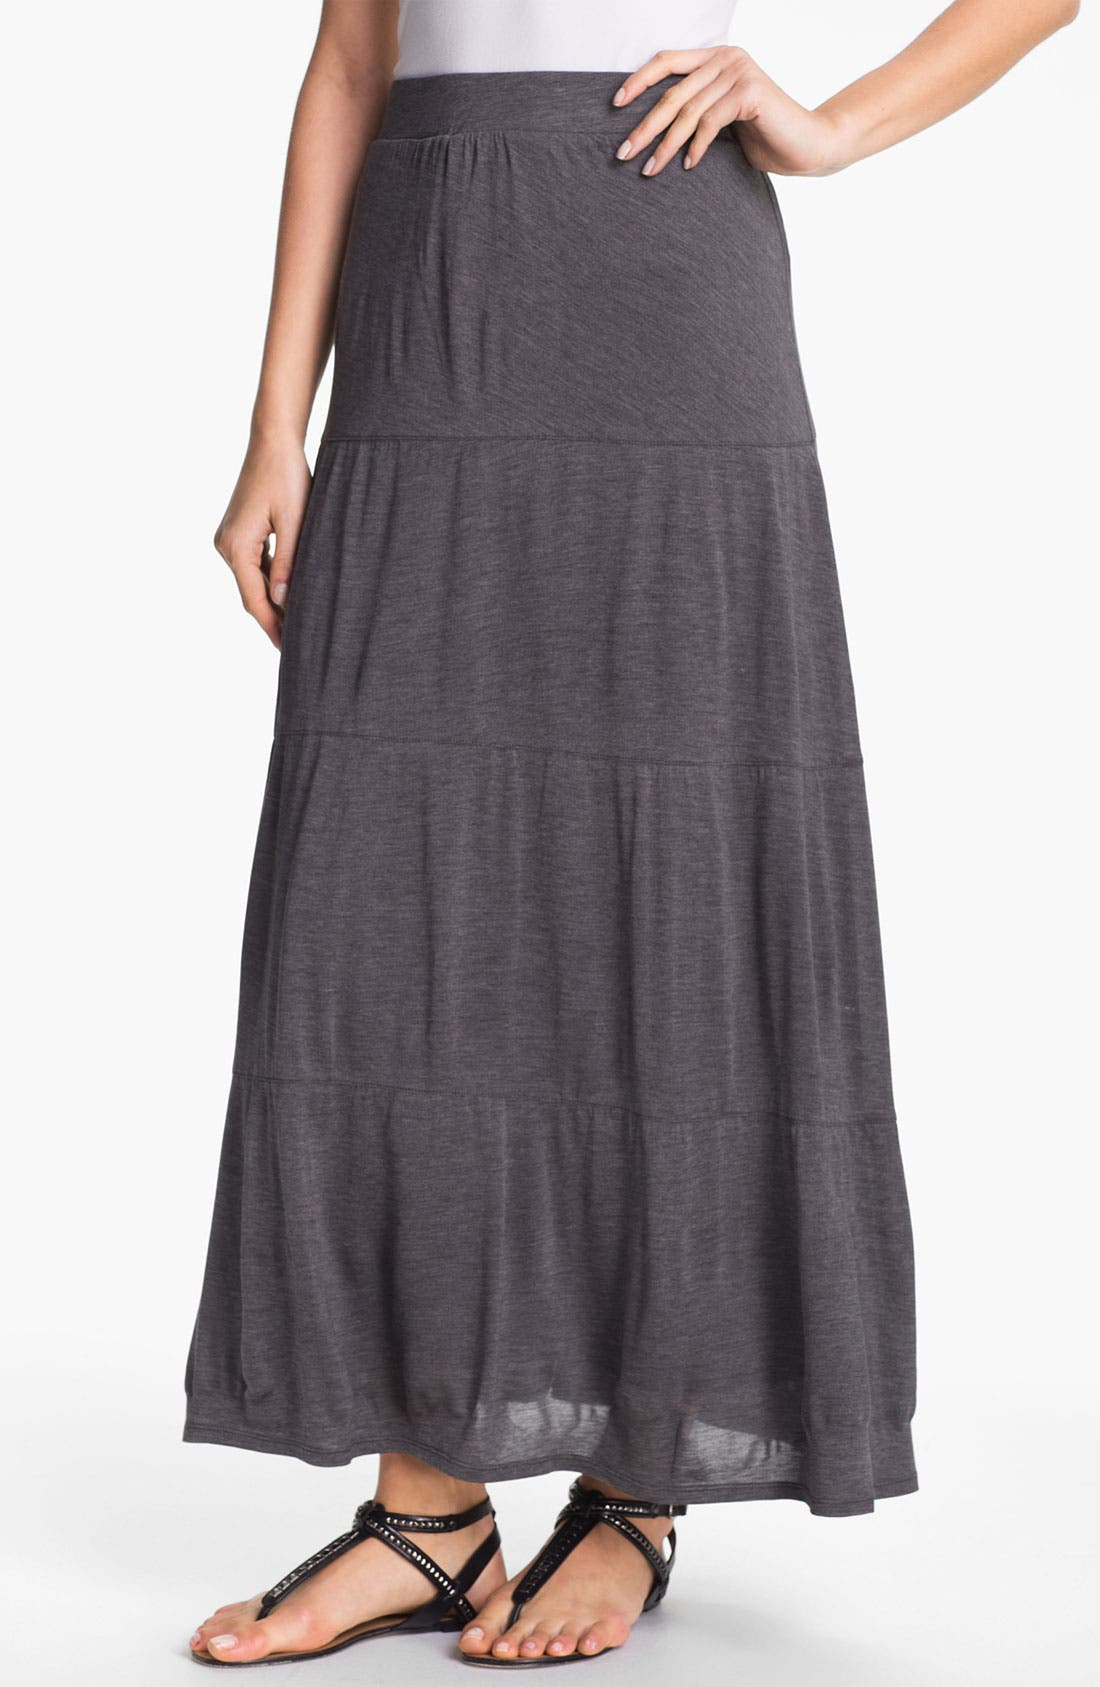 Alternate Image 1 Selected - Eileen Fisher Tiered Maxi Skirt (Online Only)